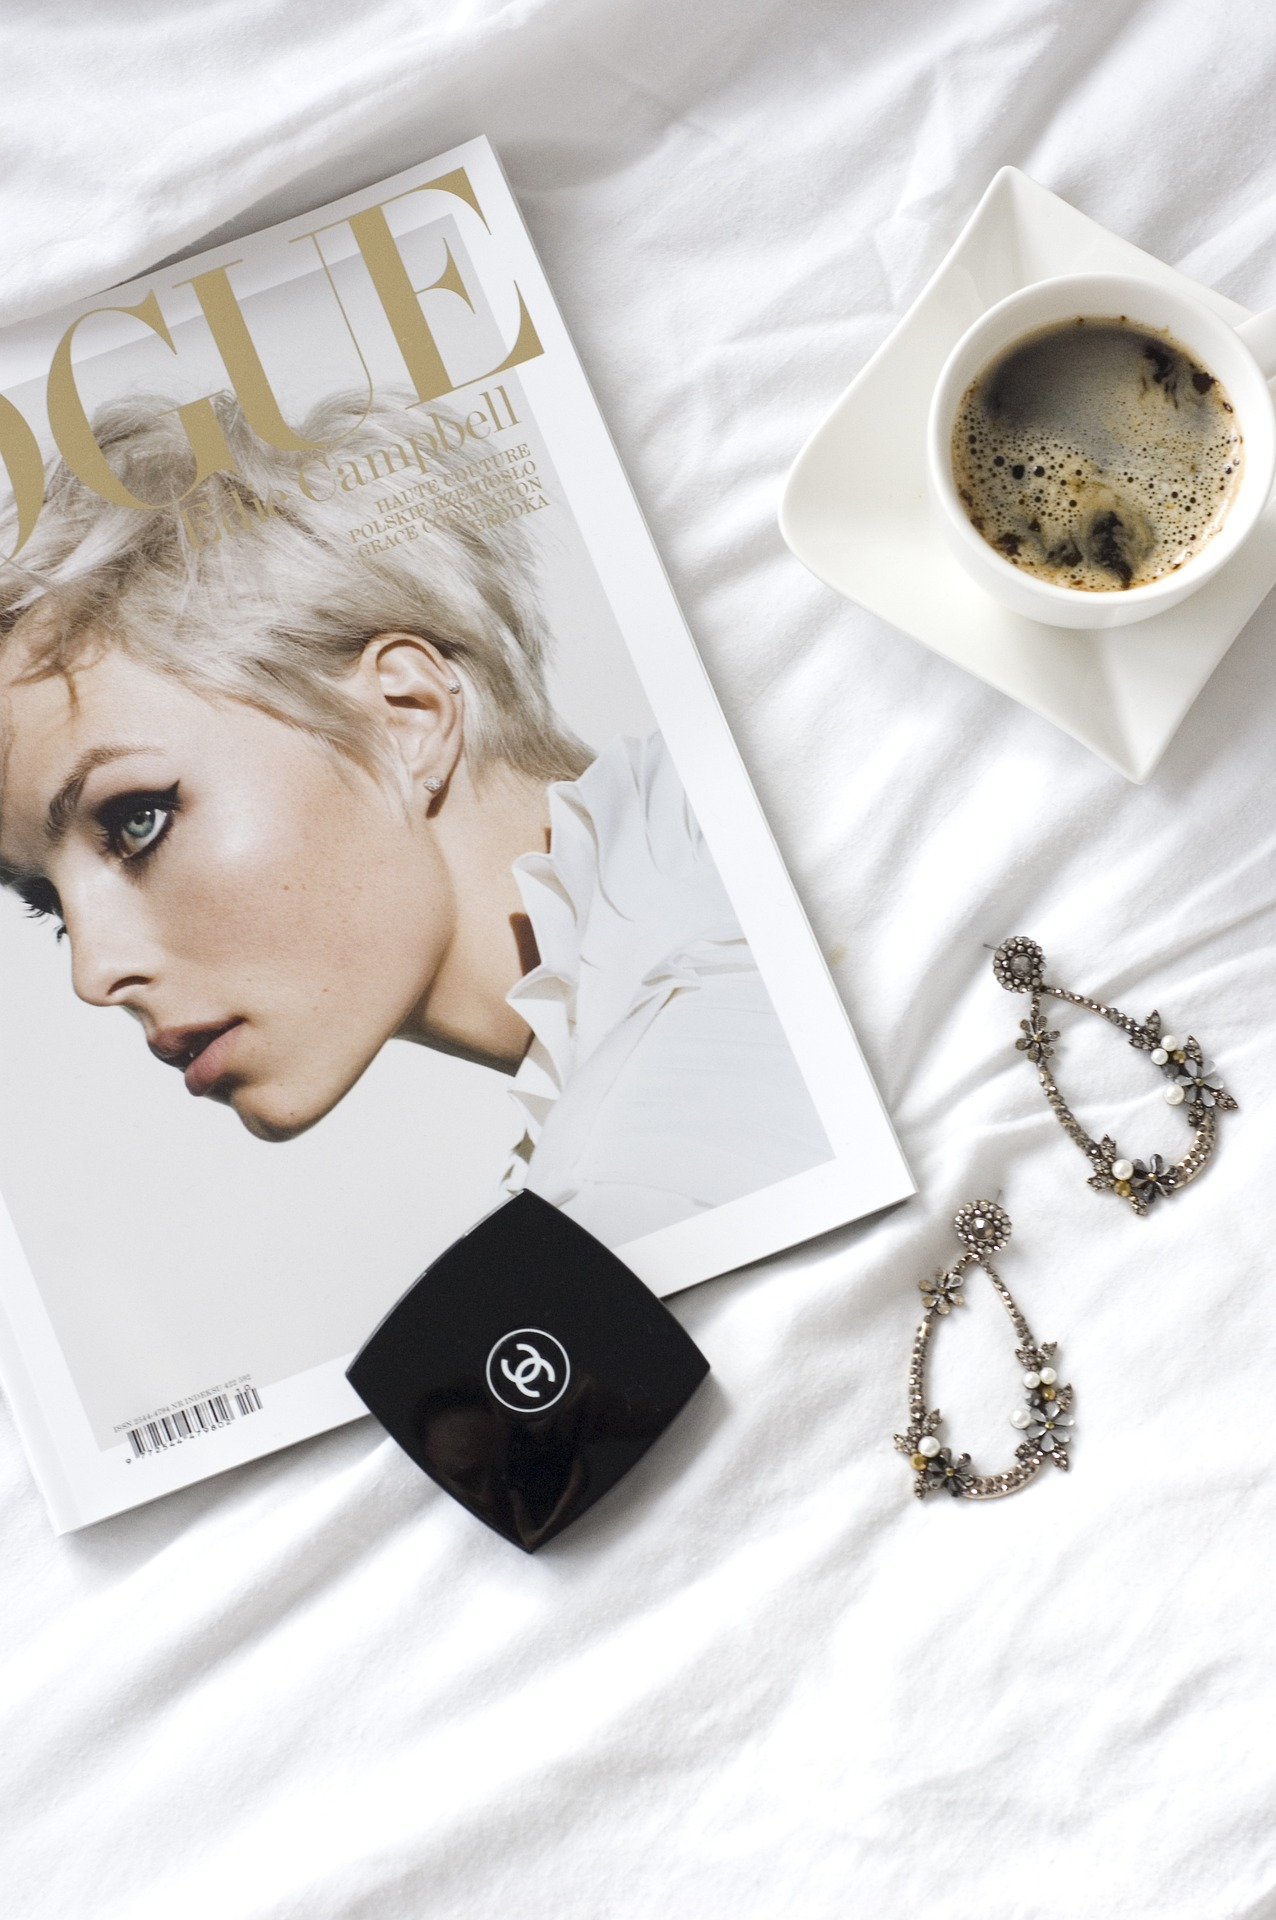 Still life featuring copy of Vogue magazine with accessories and a cup coffee